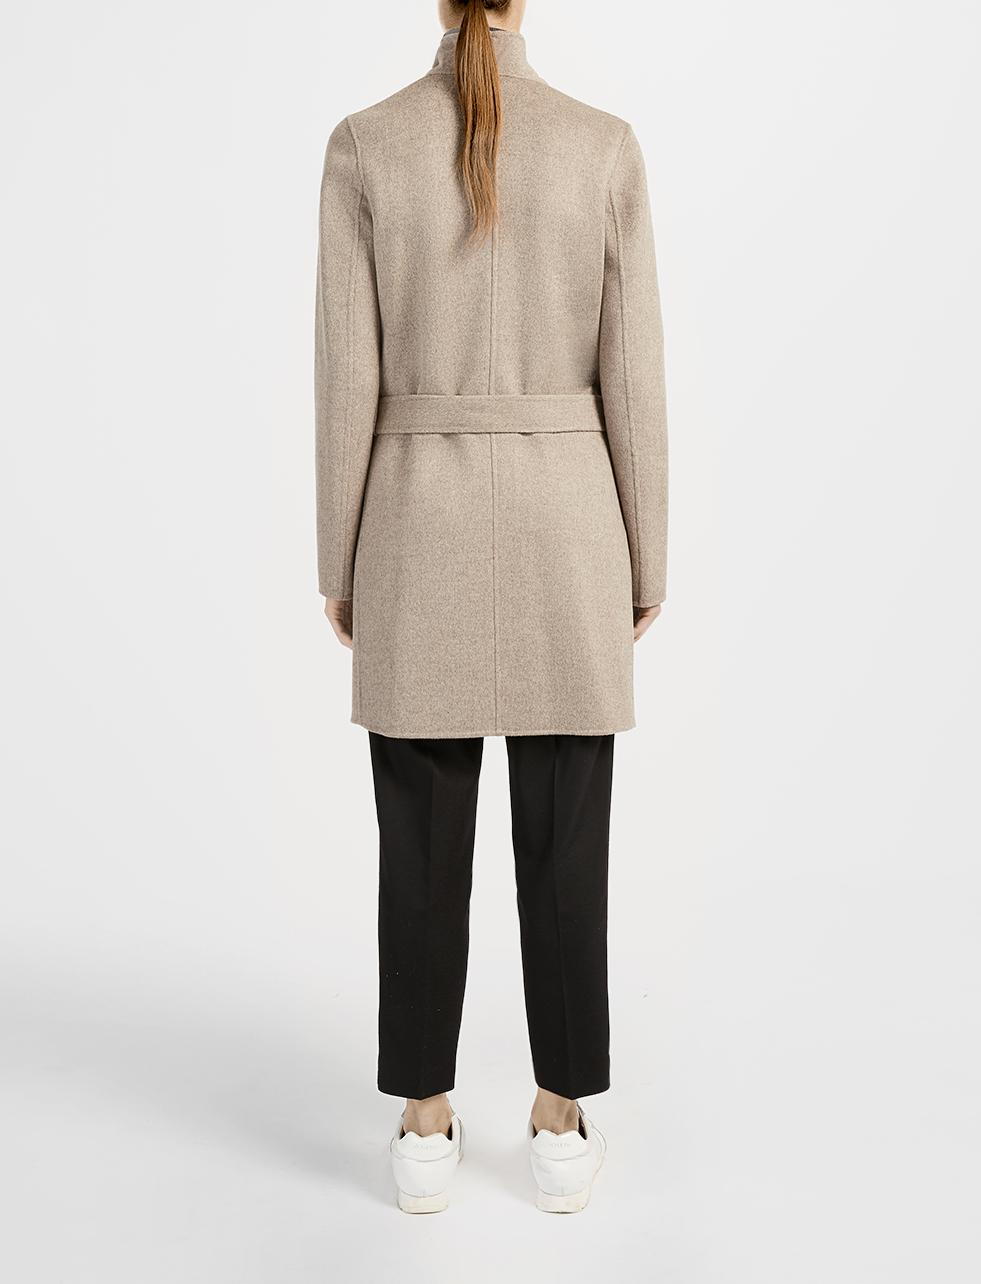 Joseph Double Cashmere Lisa Long Coat in Natural | Lyst